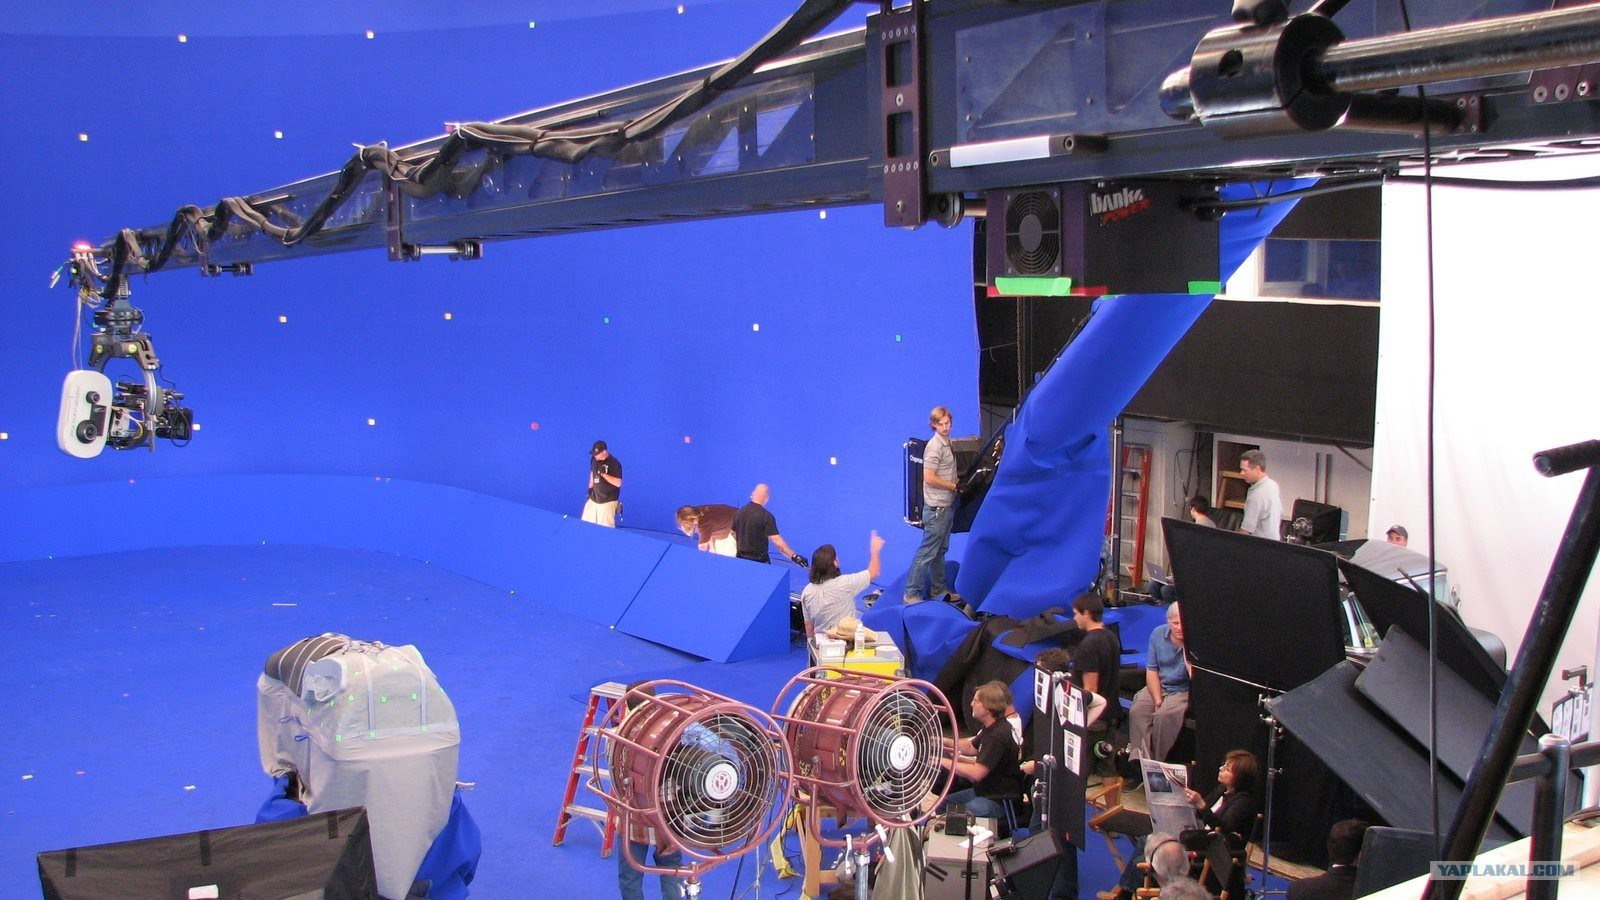 A Blue Screen Set Behind the Scenes